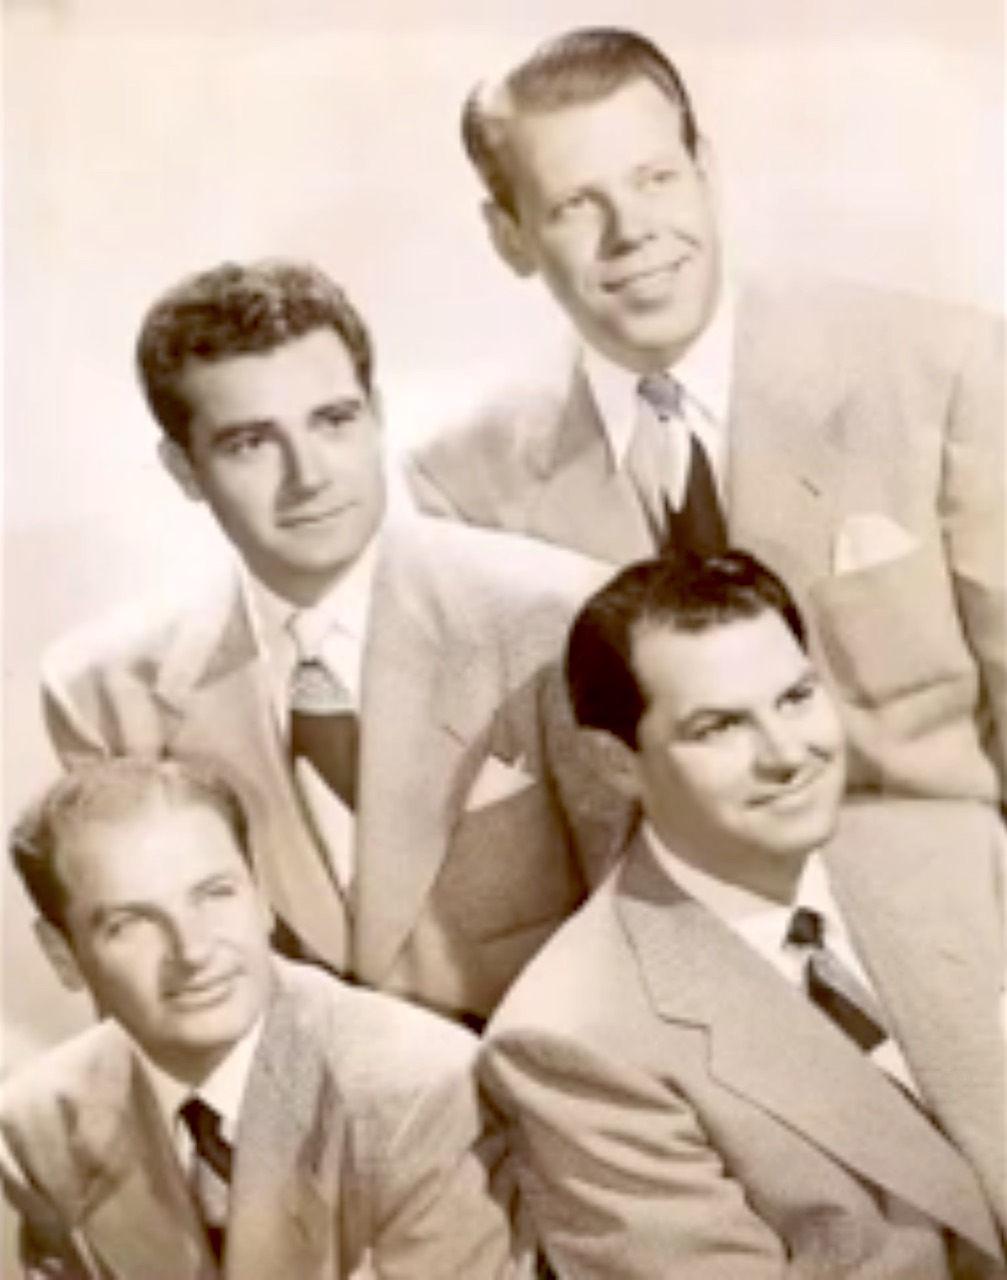 Song lyrics to Let's Do It Again, Music by Lester Lee, Lyrics by Ned Washington, as sung by The Sportsmen Quartet on The Red Skelton Show